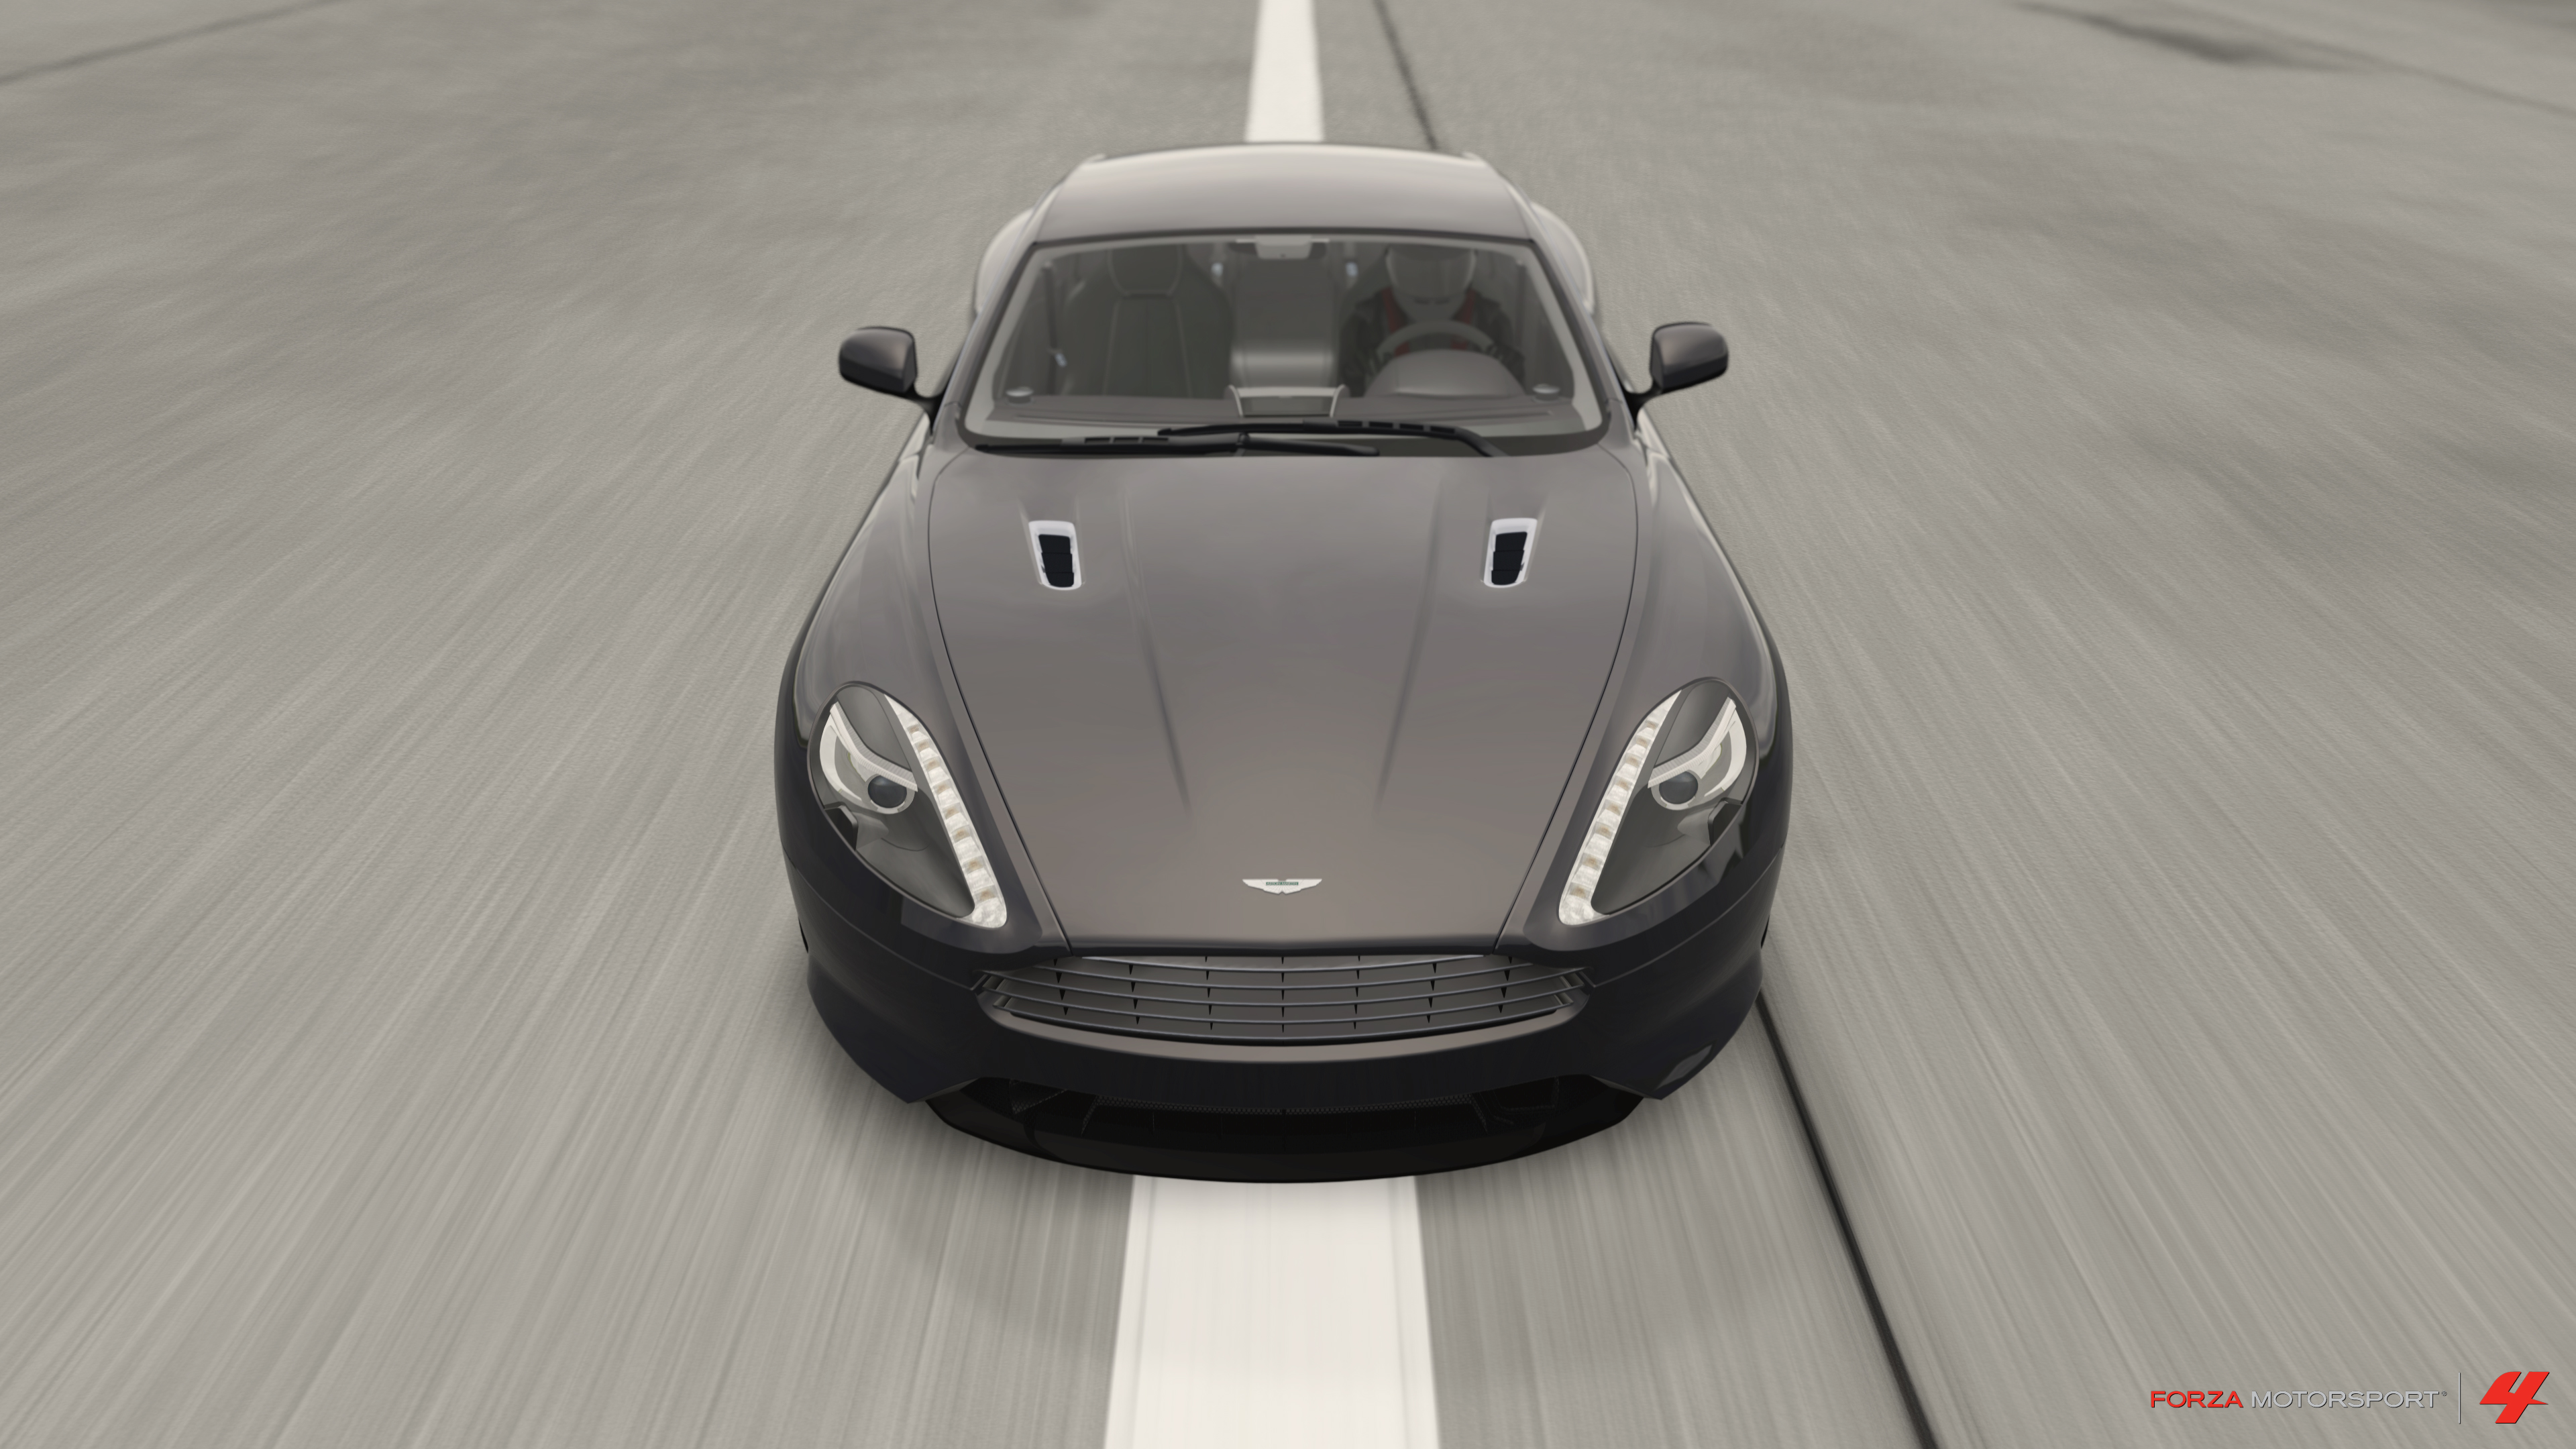 Aston Virage at the airstrip